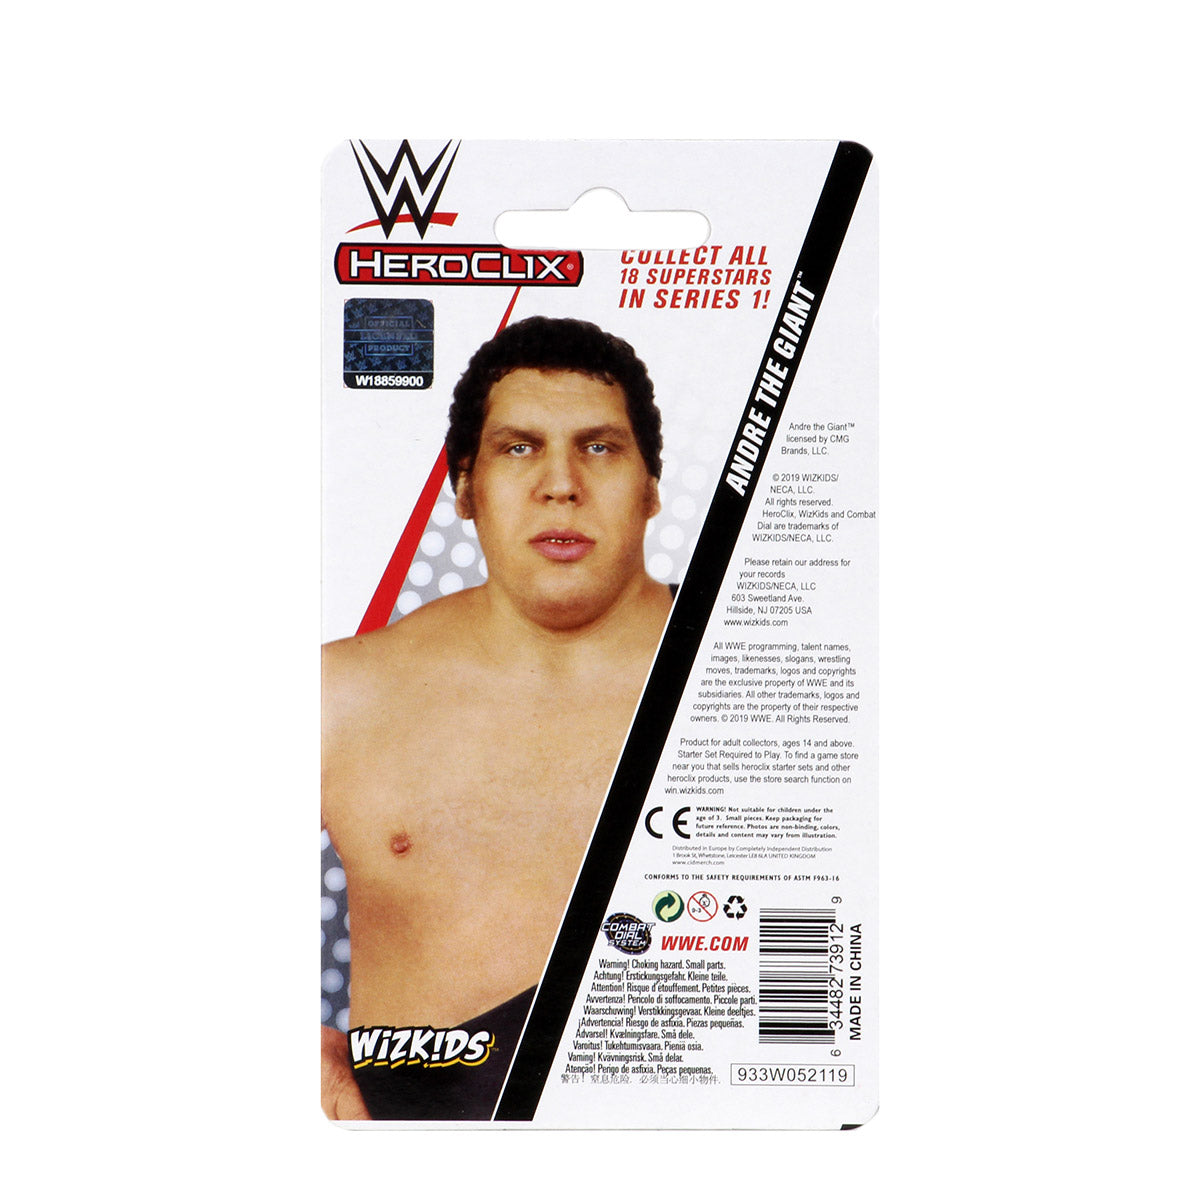 WWE HeroClix Andre the Giant Expansion Pack Series 1 Pre-Order | Lvl Up Gaming UK